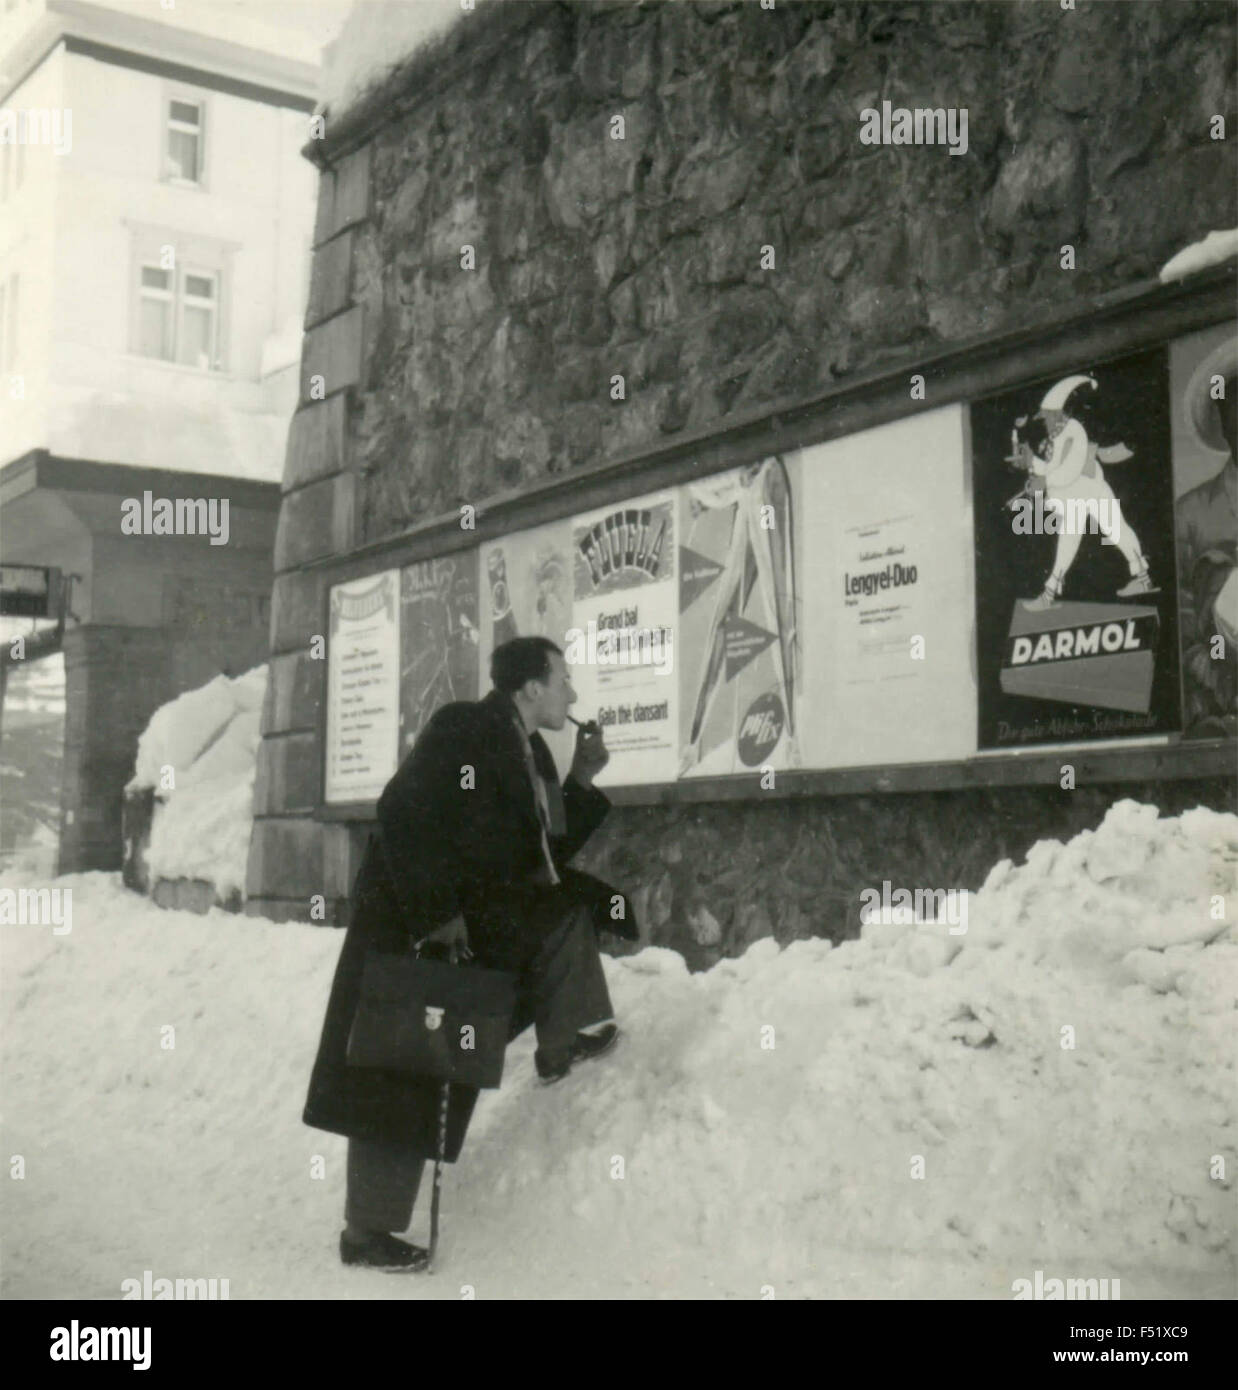 A man reads the posters attached , France - Stock Image